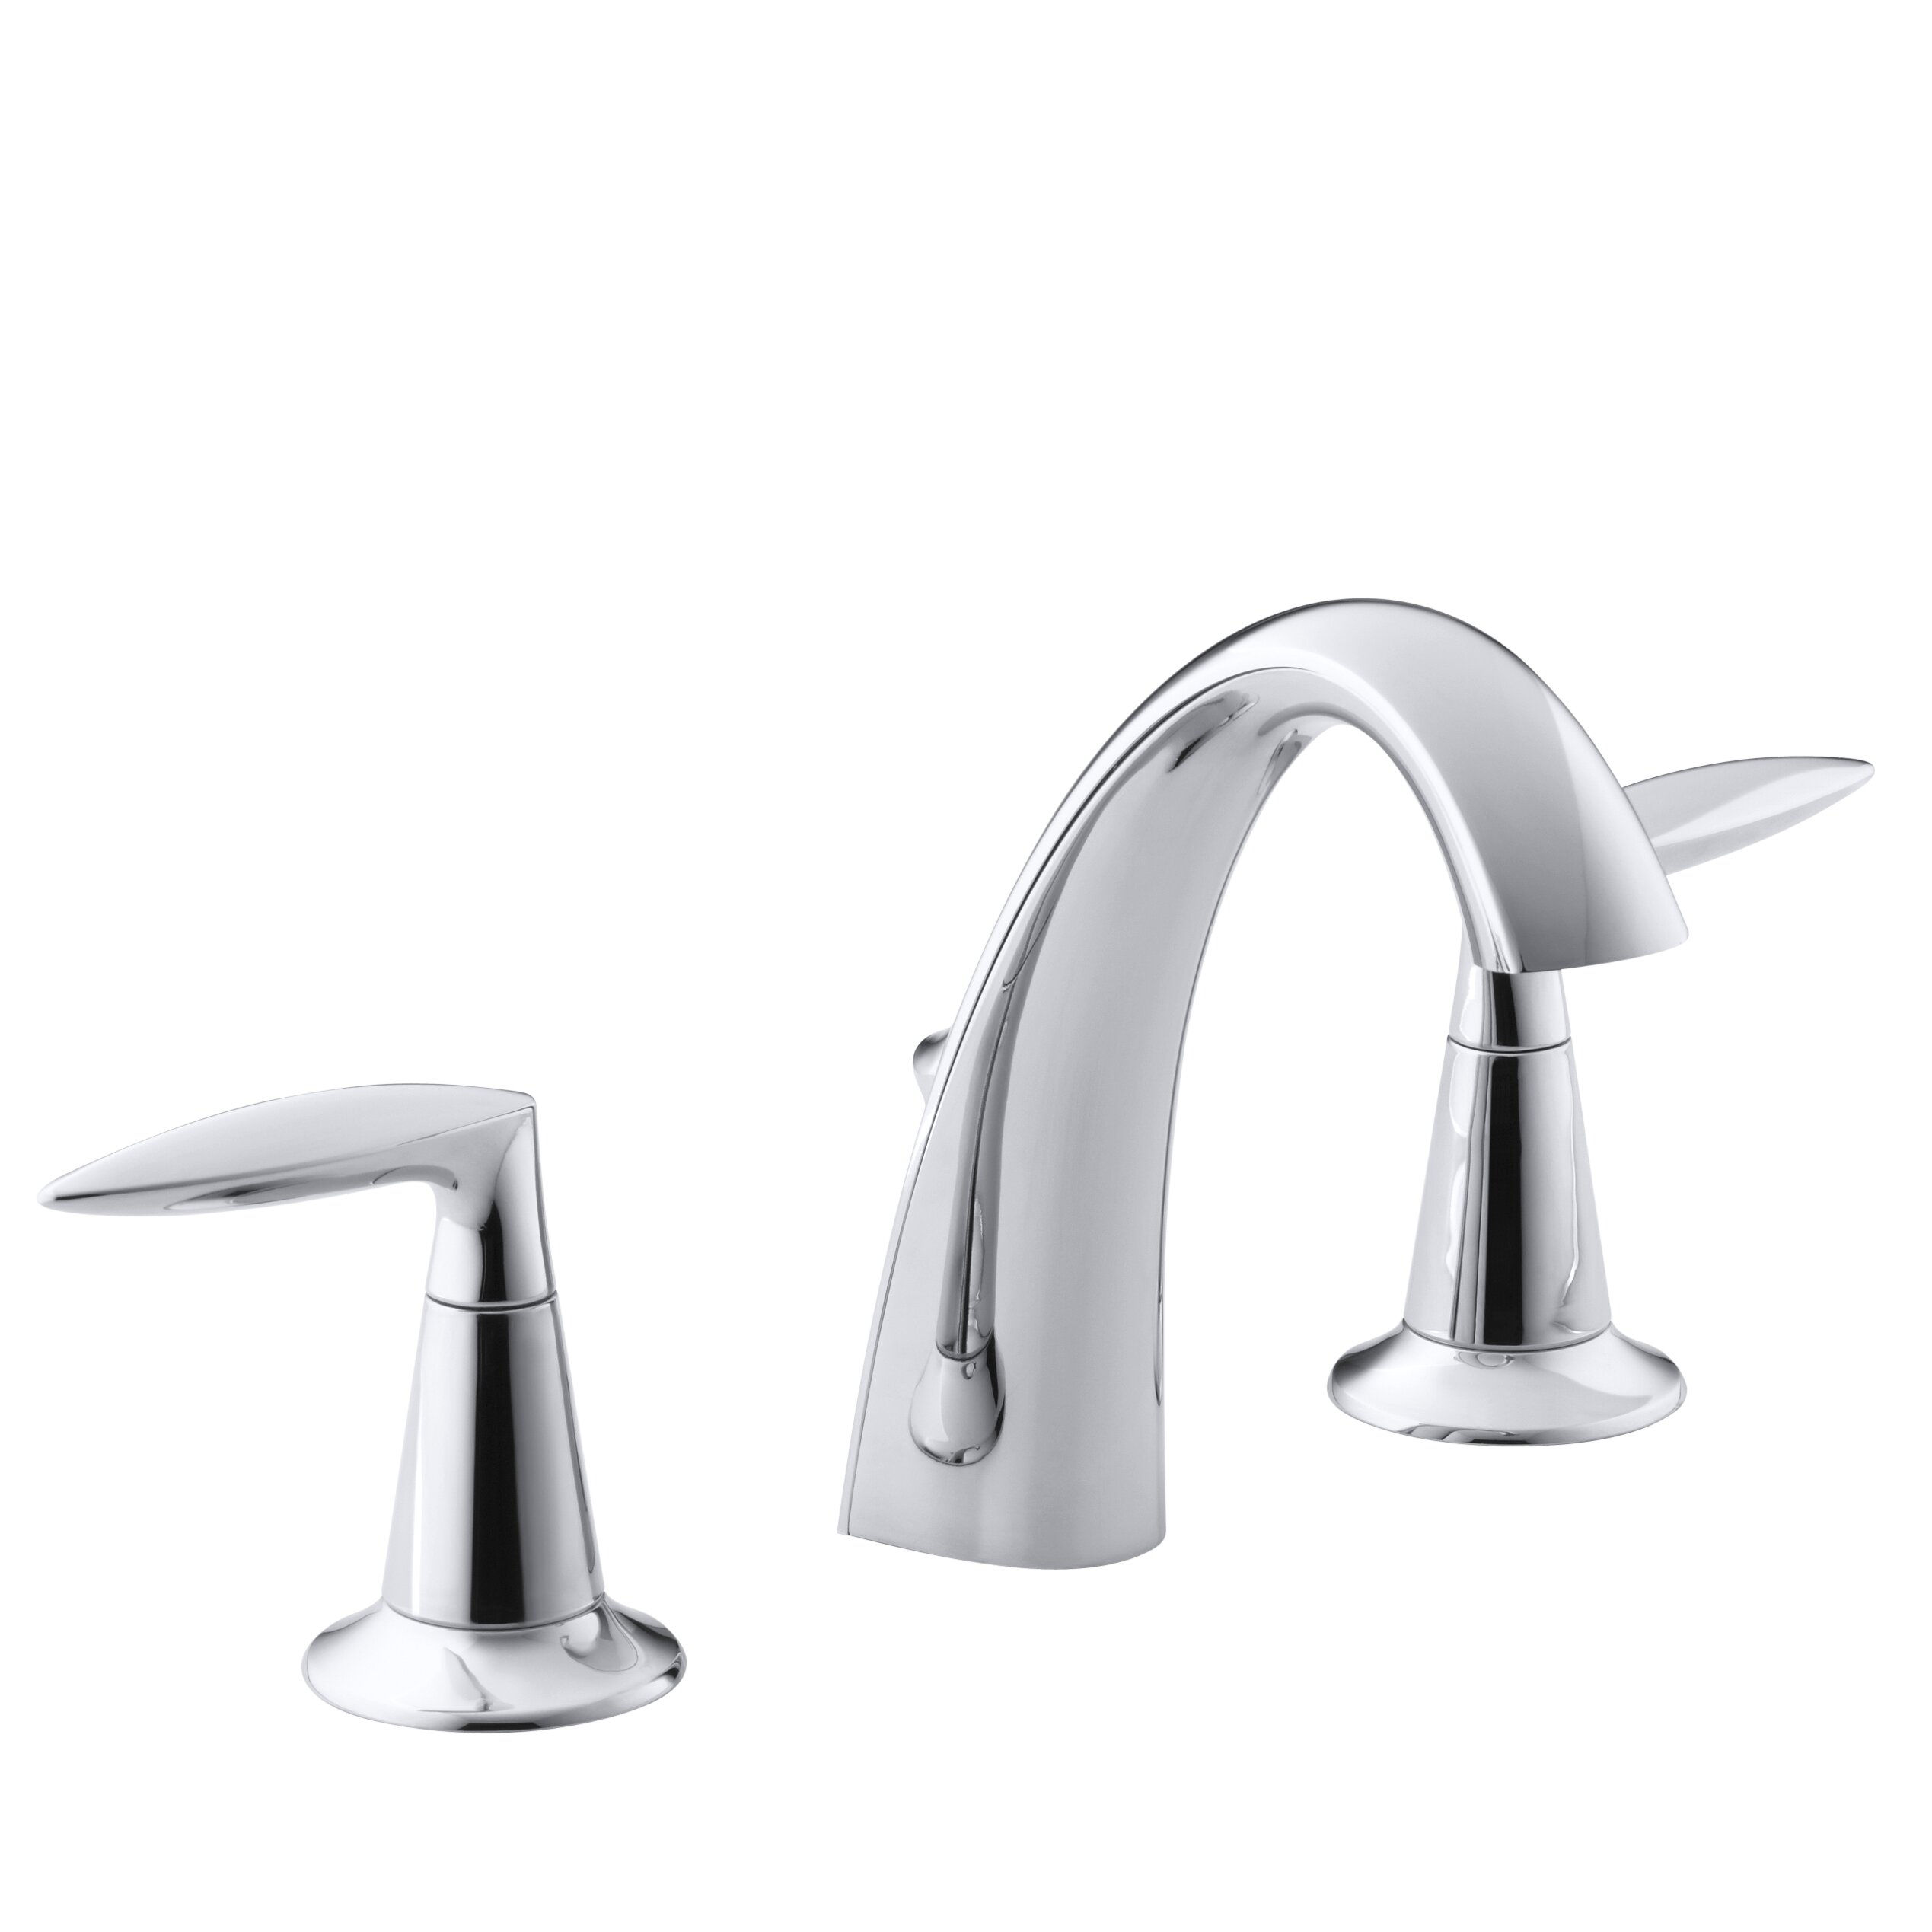 Bathroom Sink Faucets: Kohler Alteo Widespread Bathroom Sink Faucet & Reviews